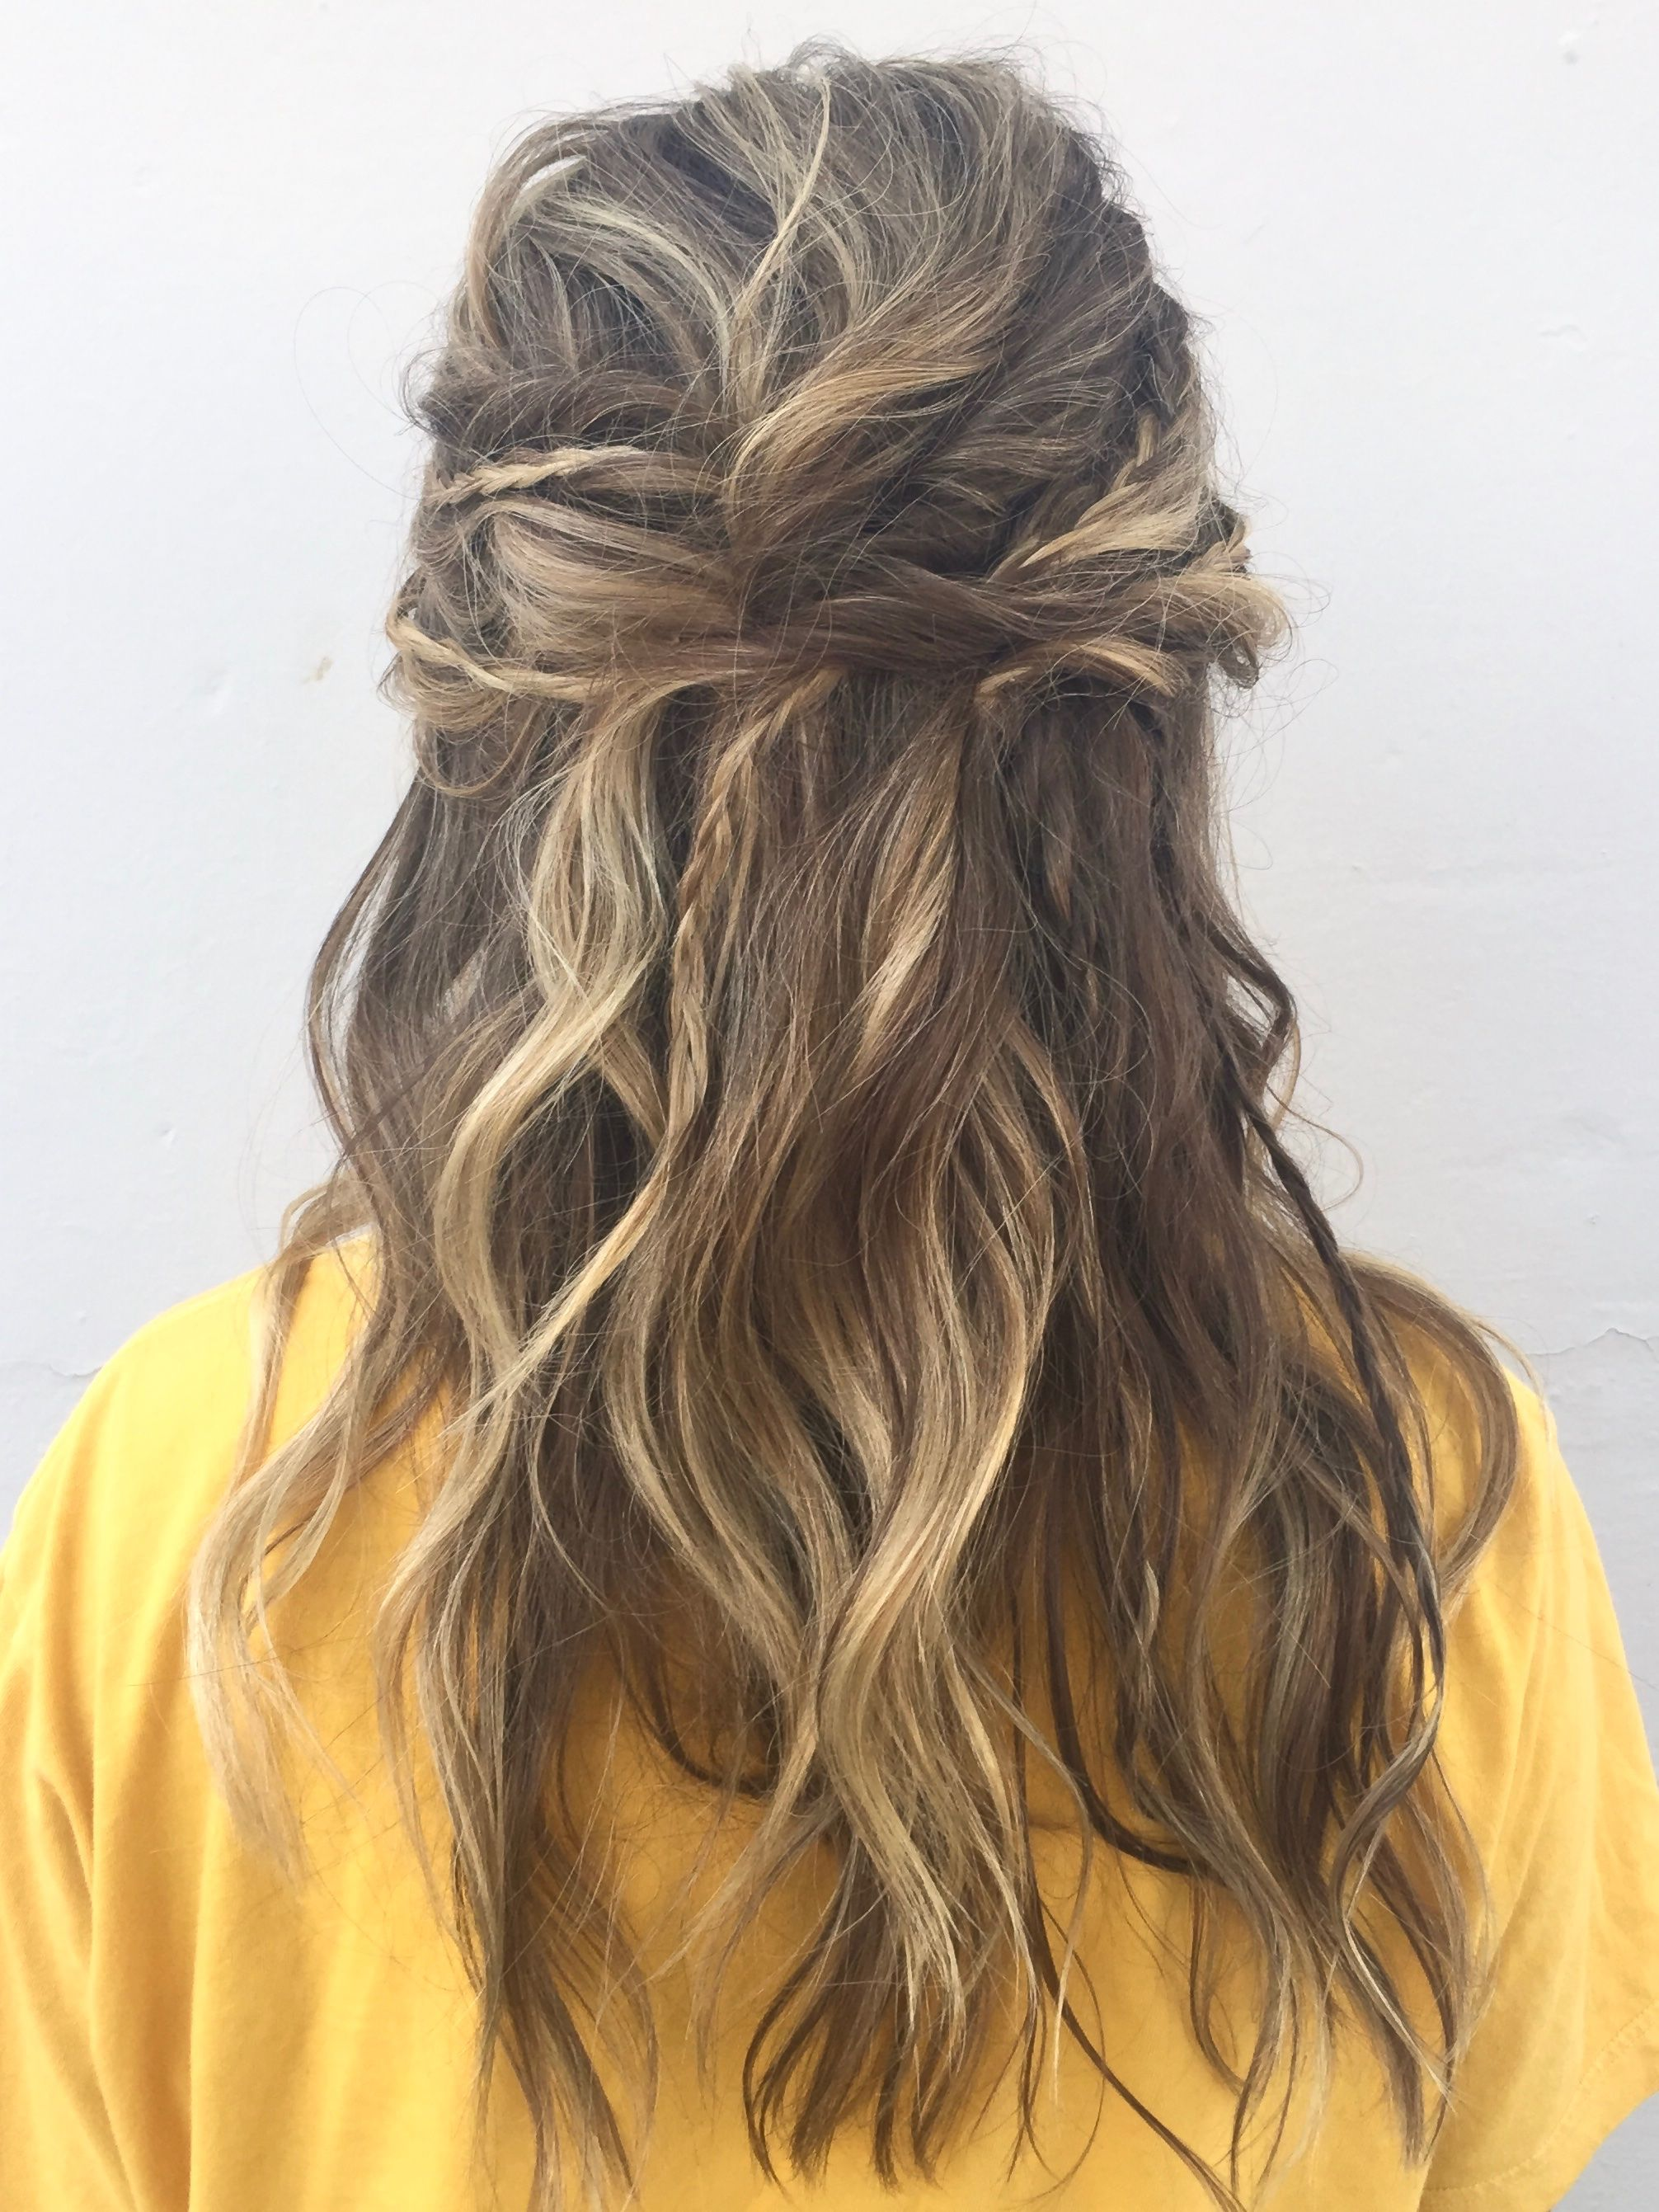 Boho hair prom updo with braids and twists and messy waves half up